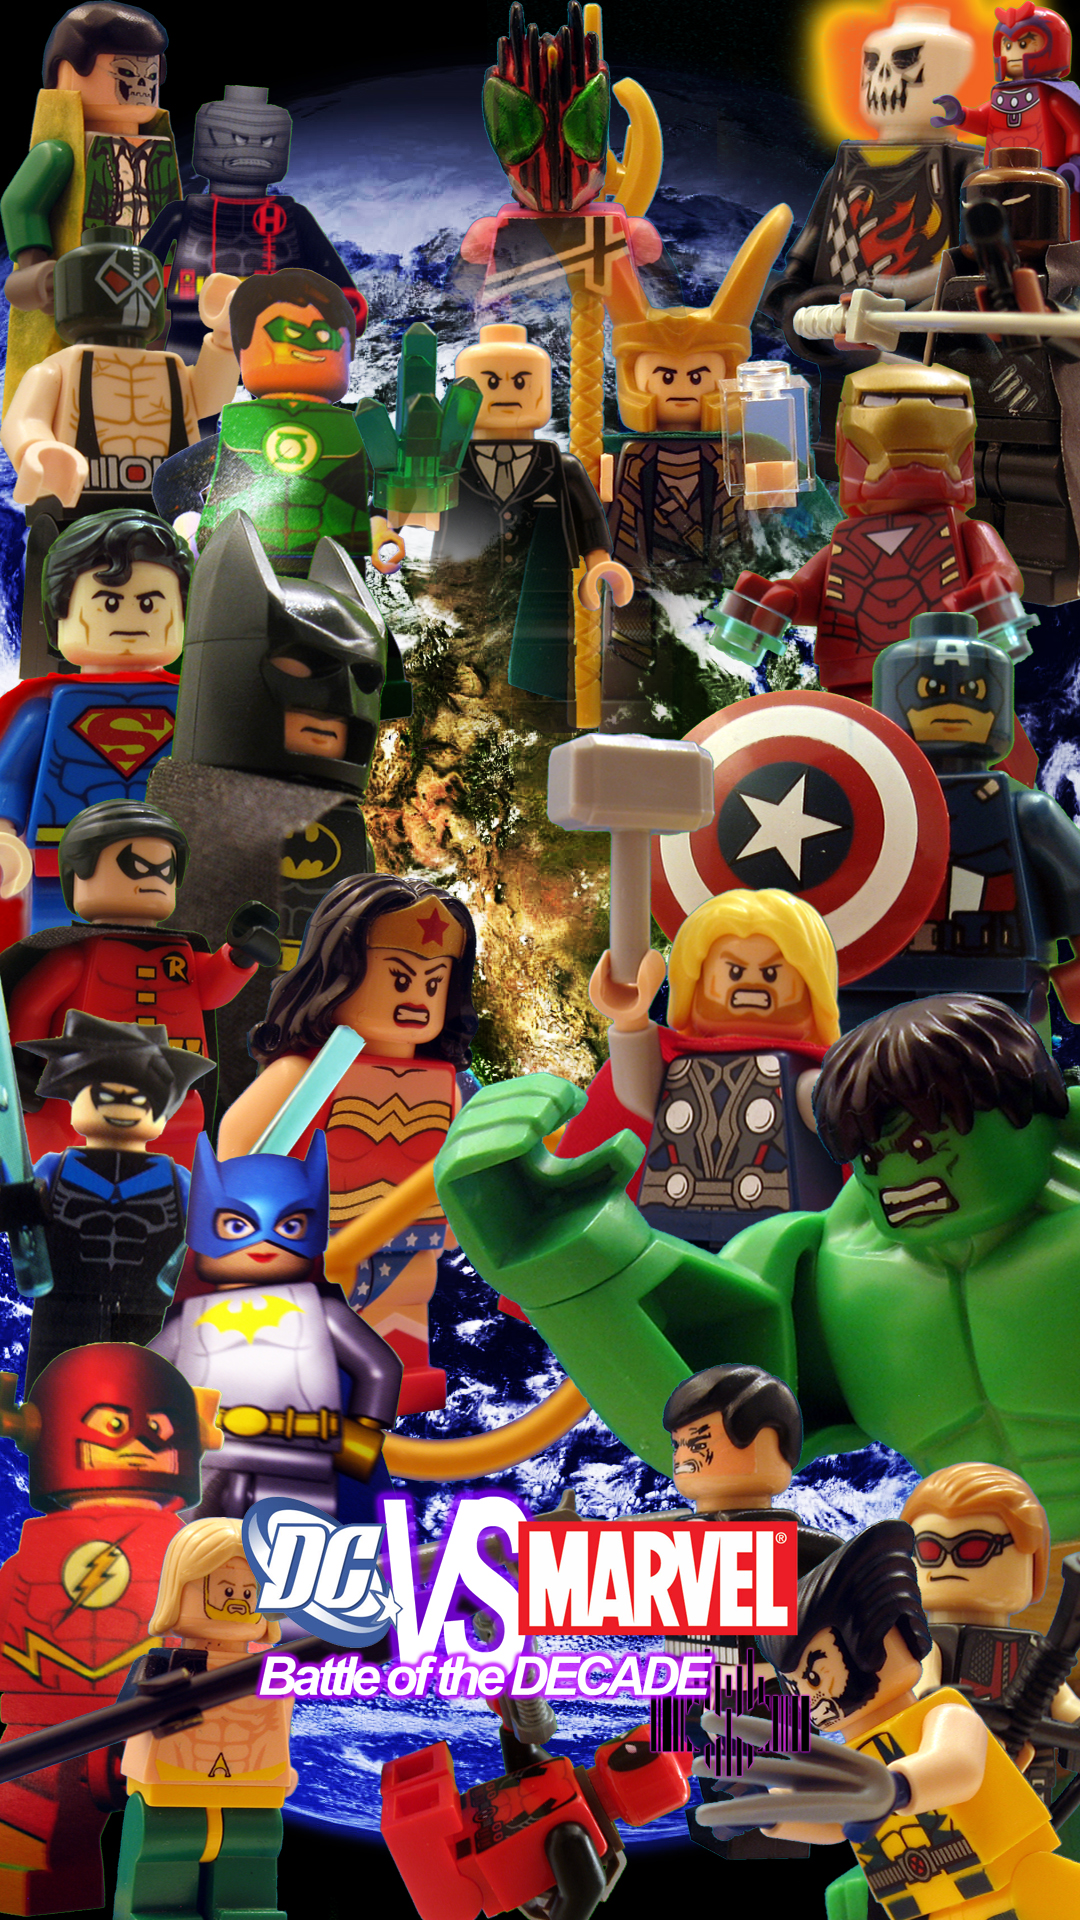 Lego dc vs marvel battle of the decade poster by digger318